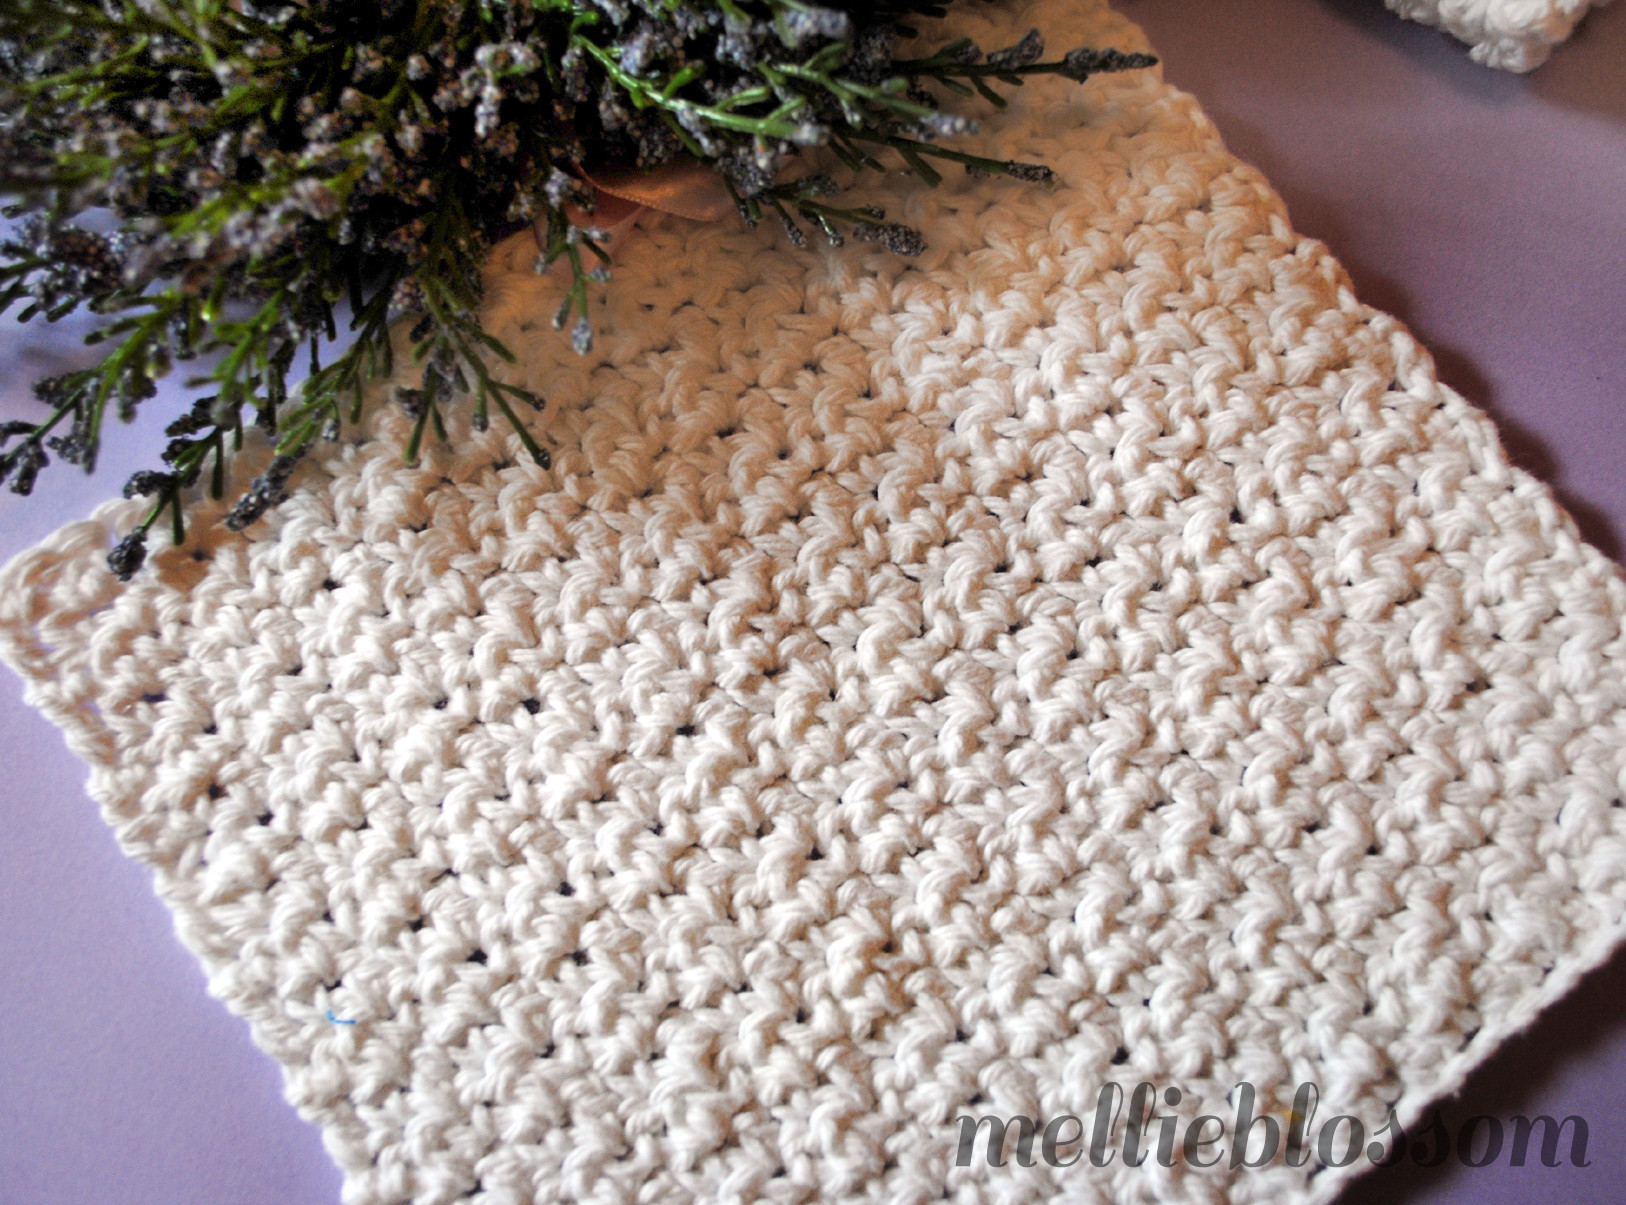 Free Easy Crochet Patterns Inspirational Free Easy Crochet Dishcloth Pattern Of Superb 49 Images Free Easy Crochet Patterns